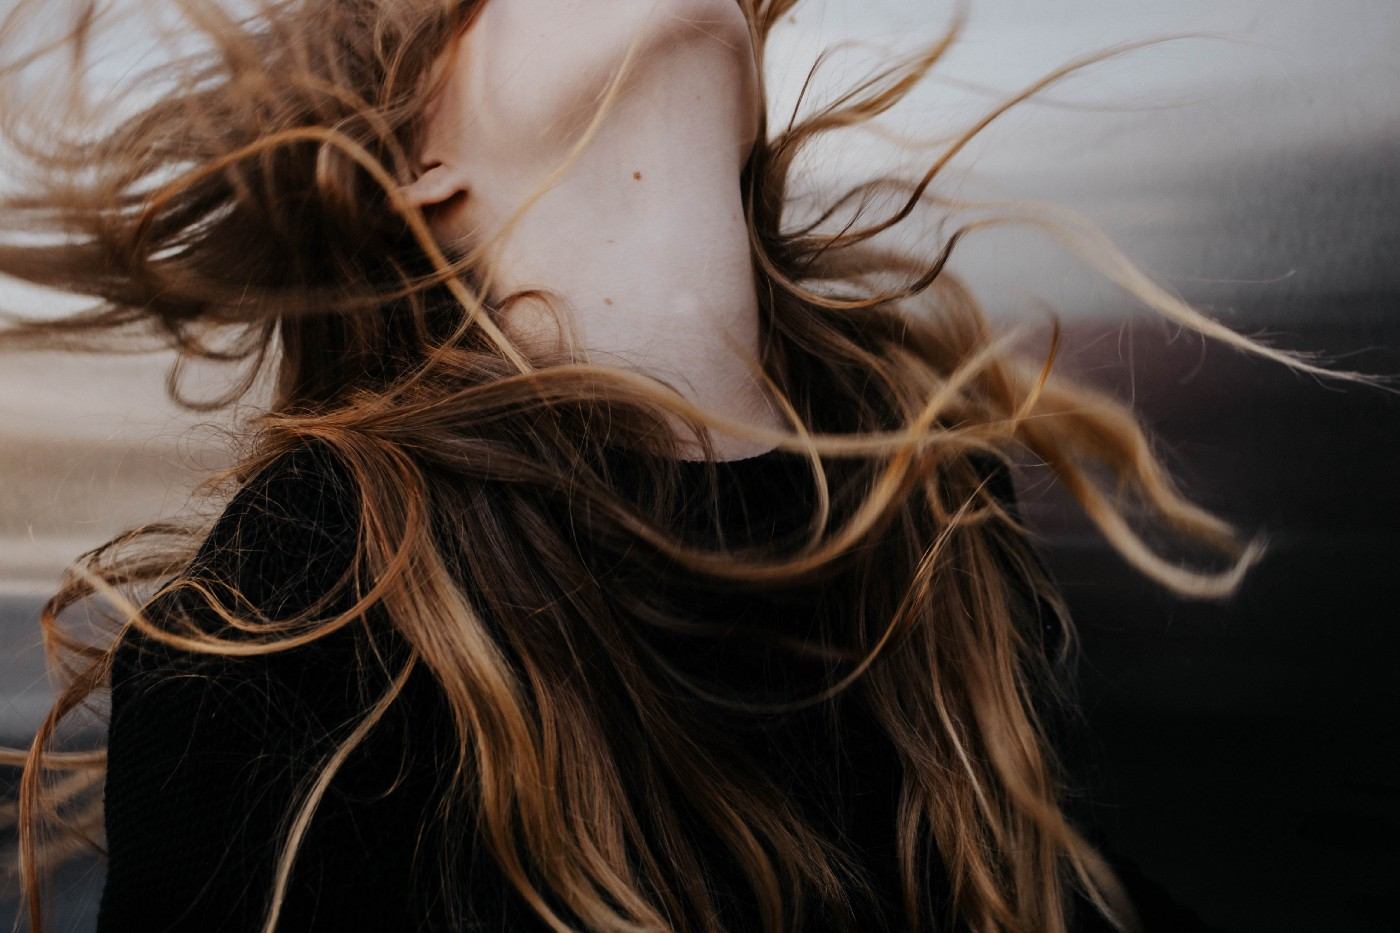 A ginger haired girl throwing her hair in the air in a powerful pose.